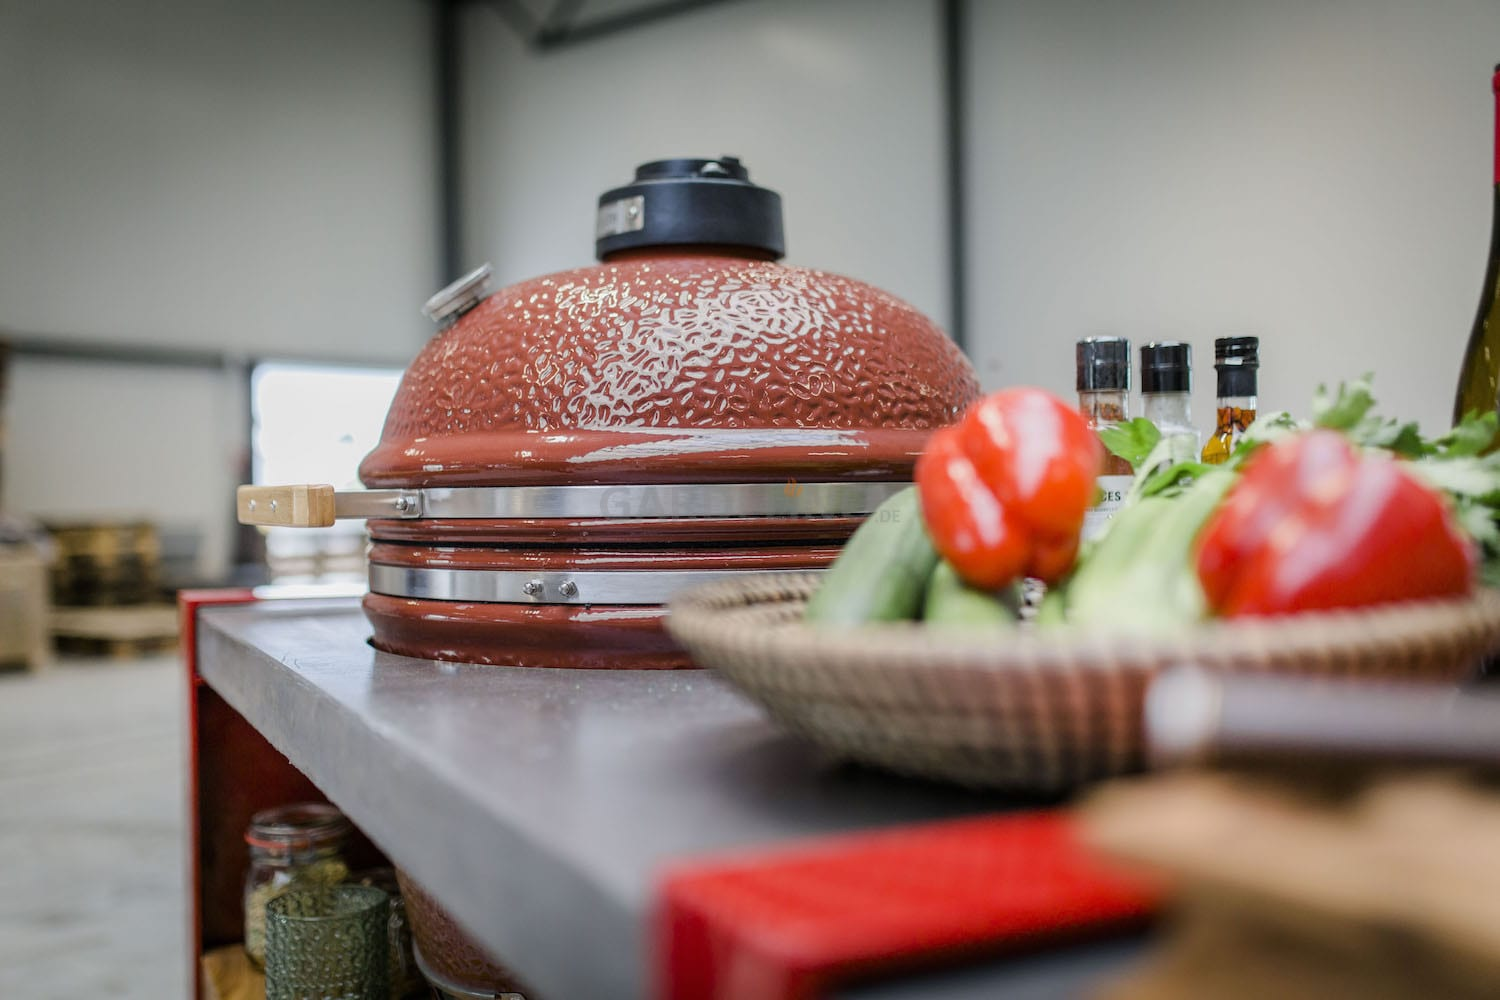 Rote Oehler Outdoorkitchen mit passendem Kamadogrill in rot